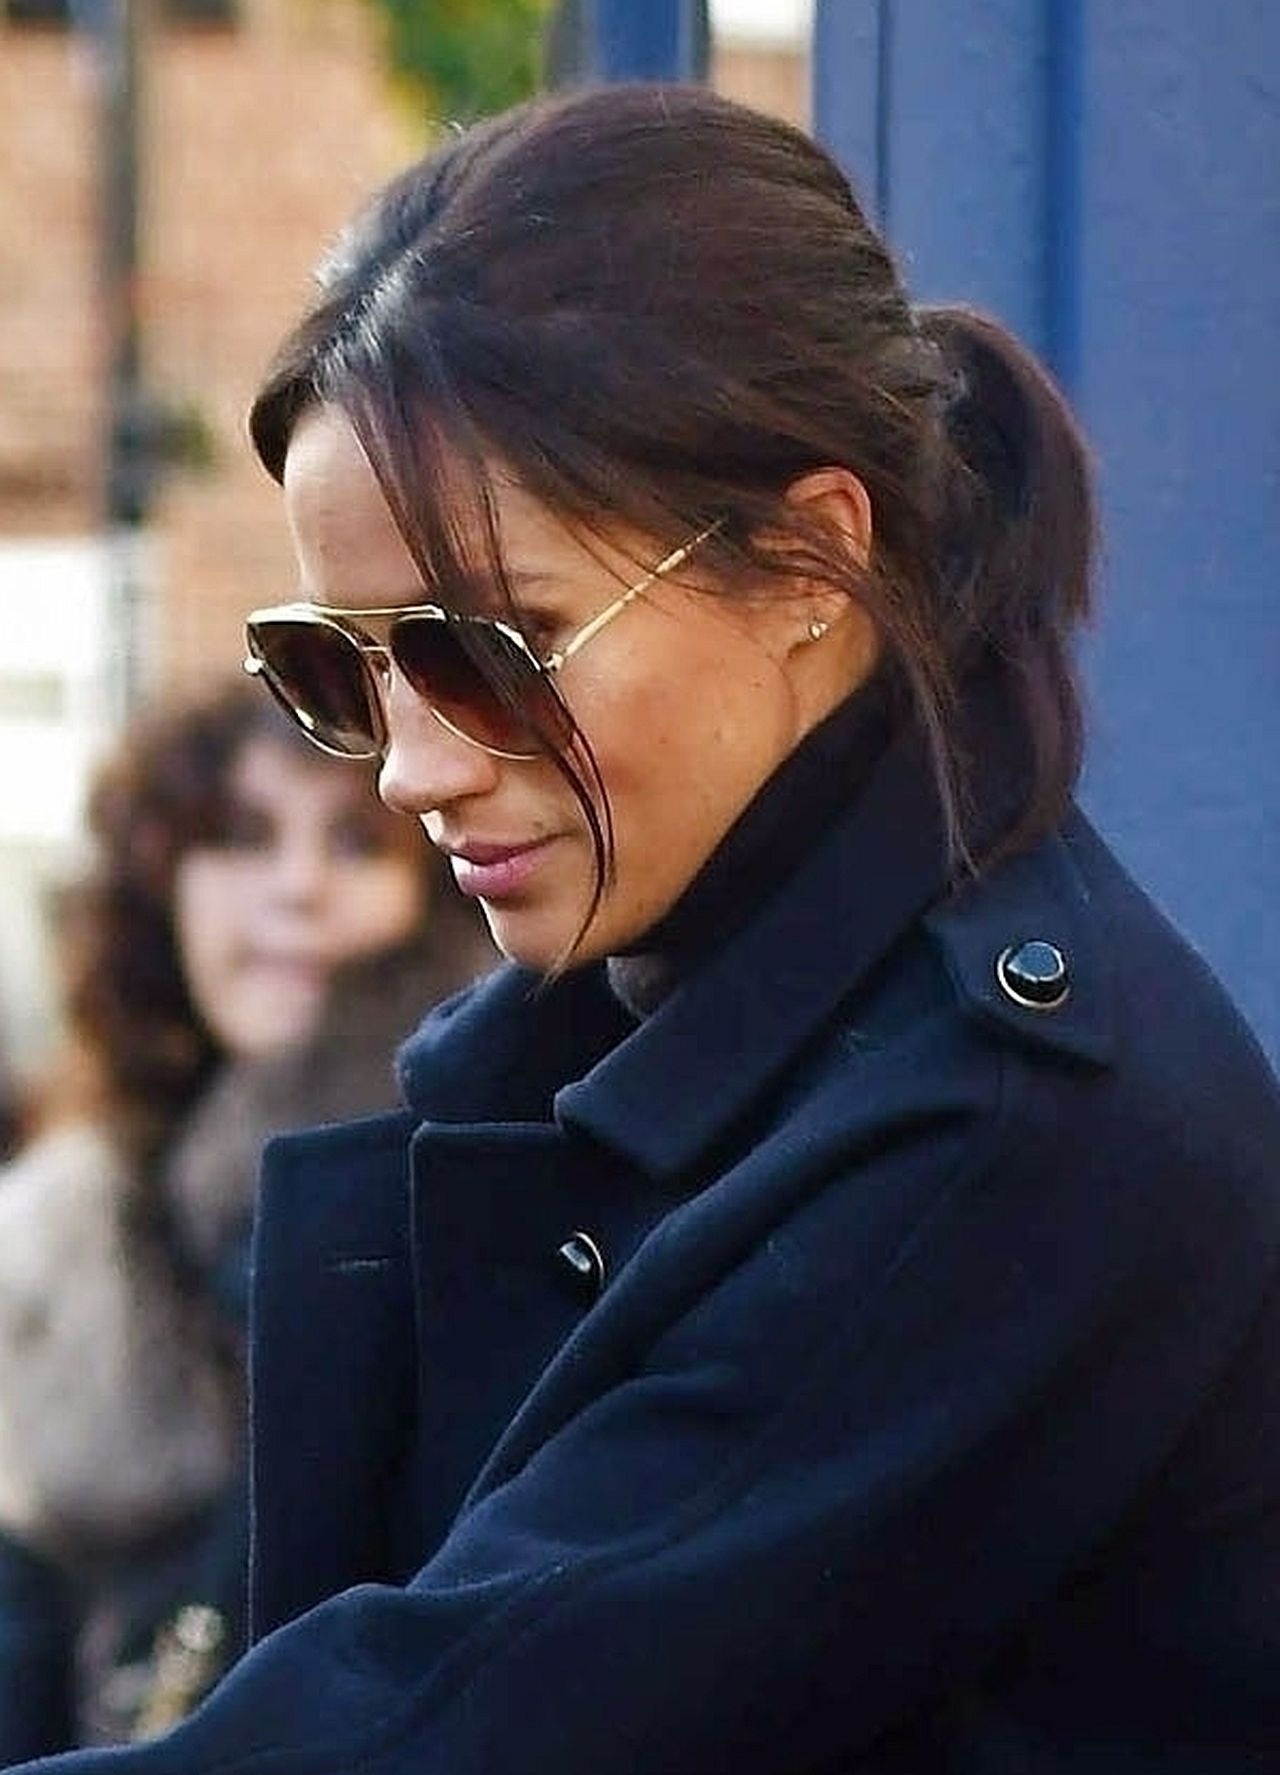 *PREMIUM-EXCLUSIVE* Pregnant Meghan Markle has lunch with her new deputy director of communications Christian Jones. *MUST CALL FOR PRICING* / LDNPIX / K. MURRAY / BACKGRID , kod: Meghan Markle